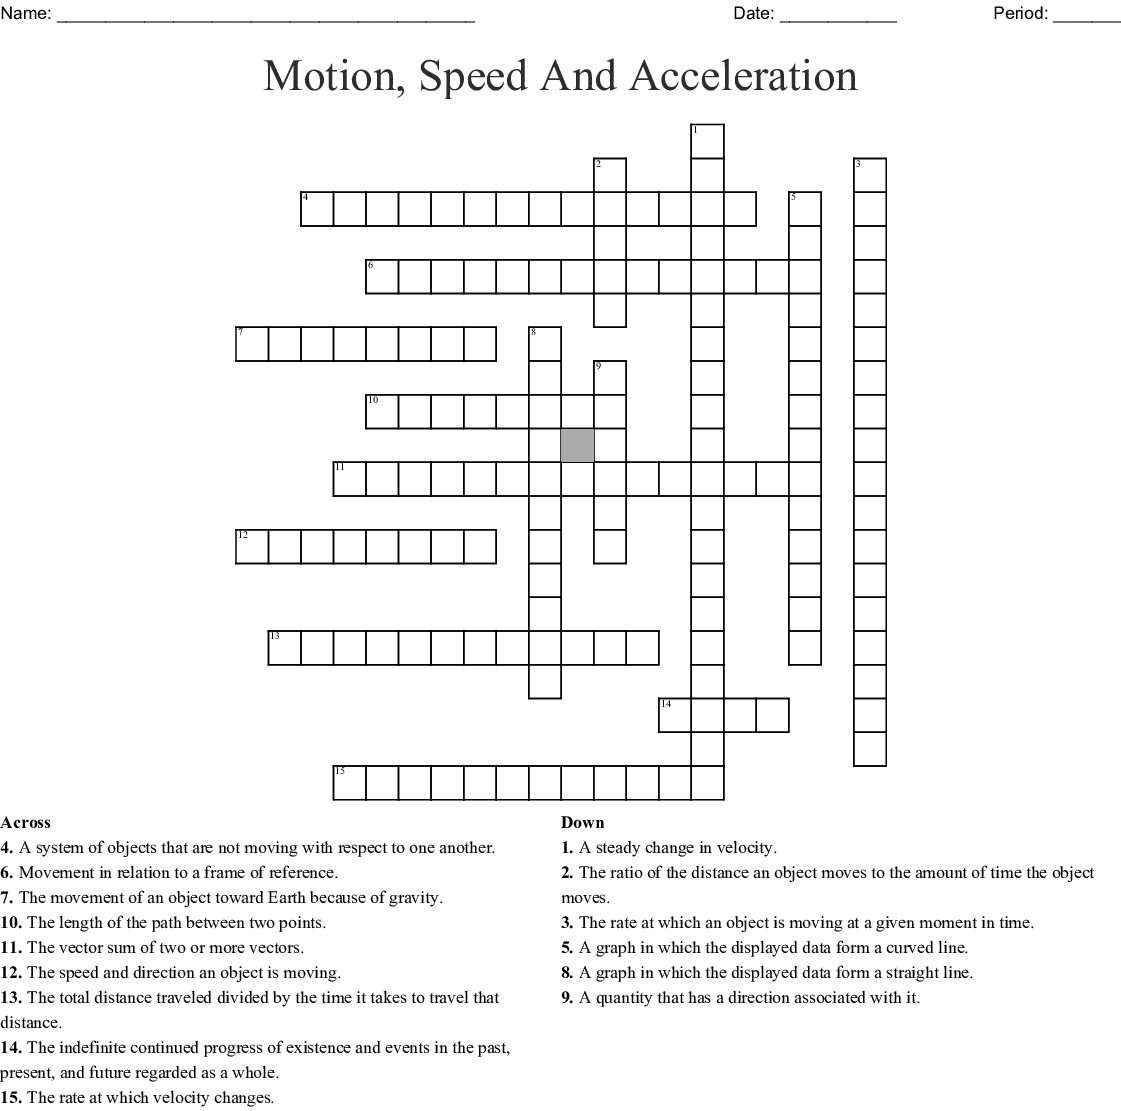 Speed And Acceleration Worksheet Answers